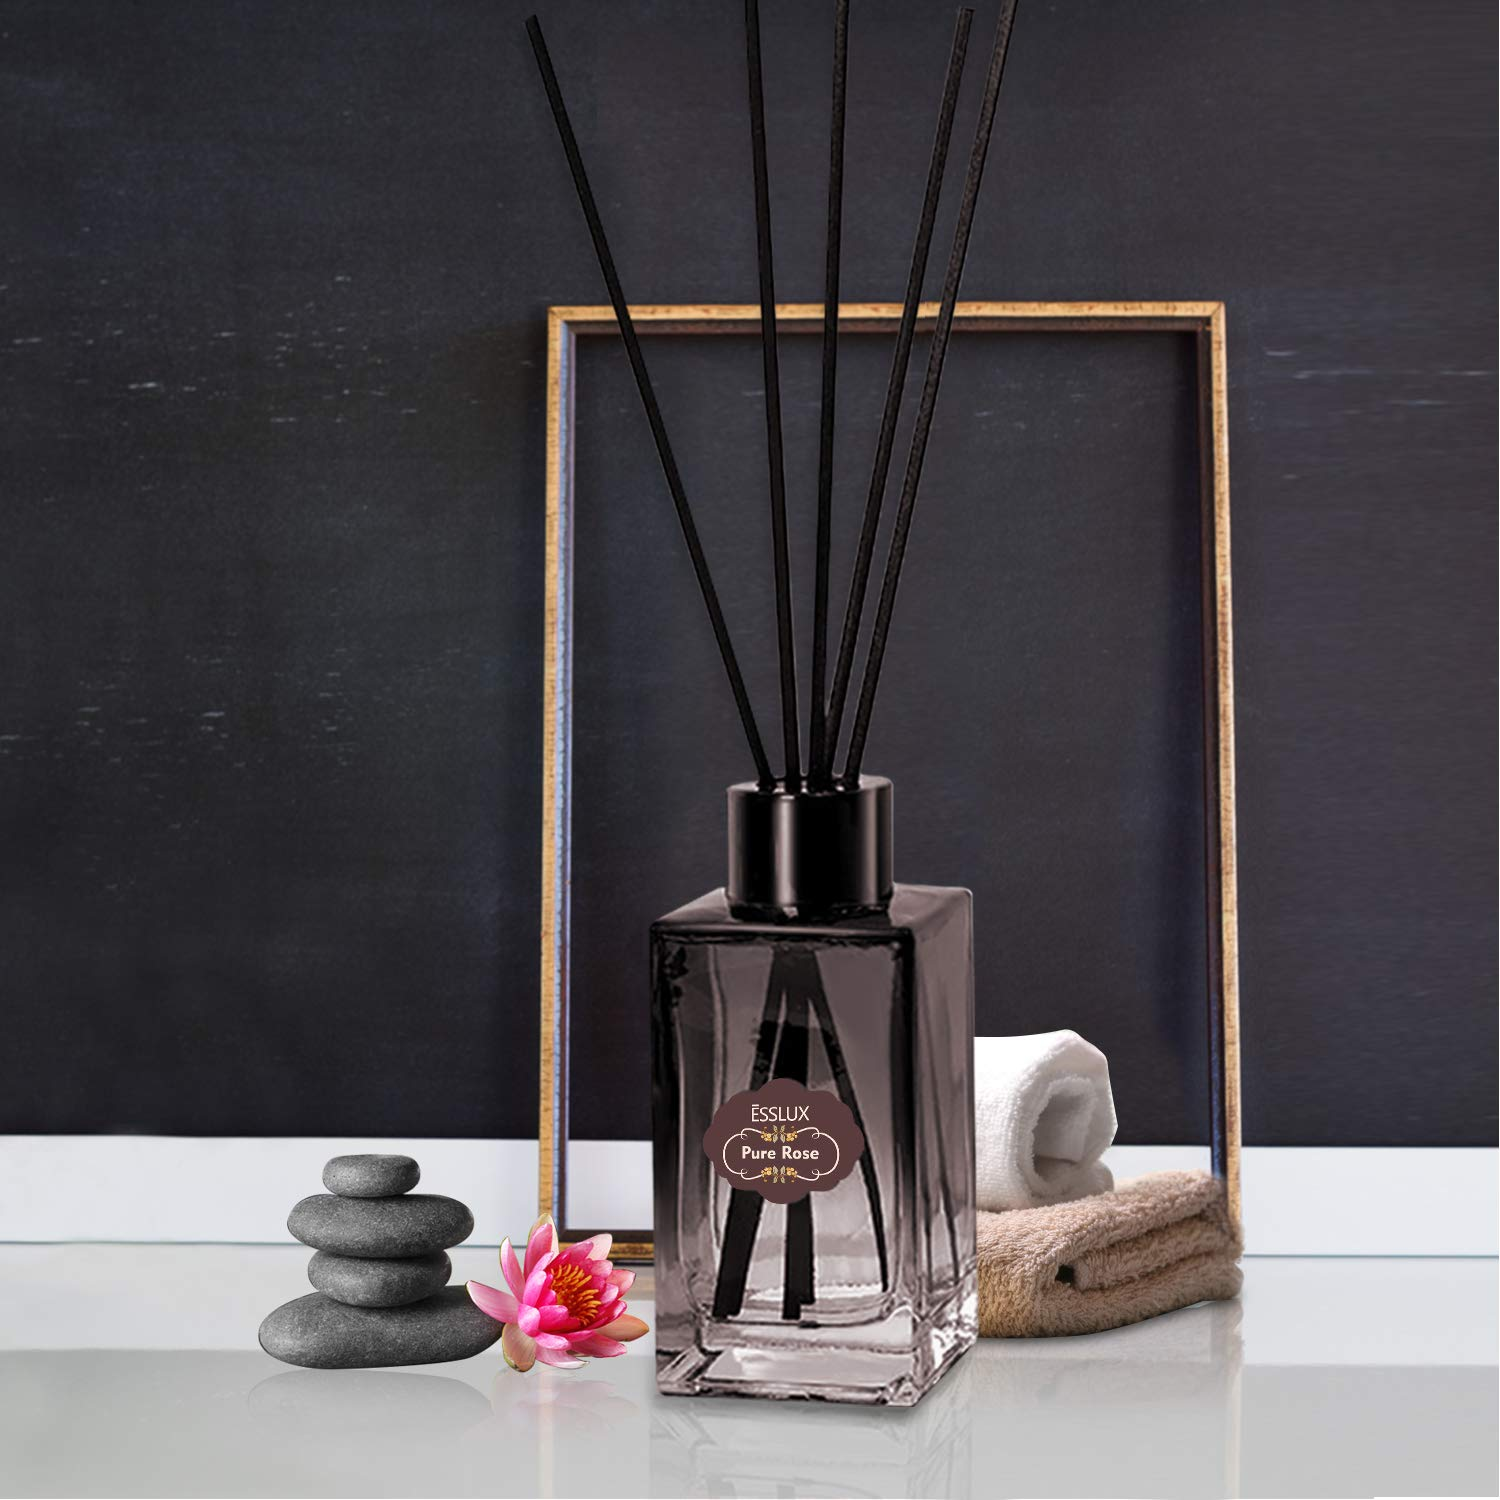 ESSLUX Scent Diffuser, Room Reed Diffuser Premium Quality for Home and Office, Air Freshener & Home Decor & Ideal Gift-Pure Rose by ESSLUX (Image #5)